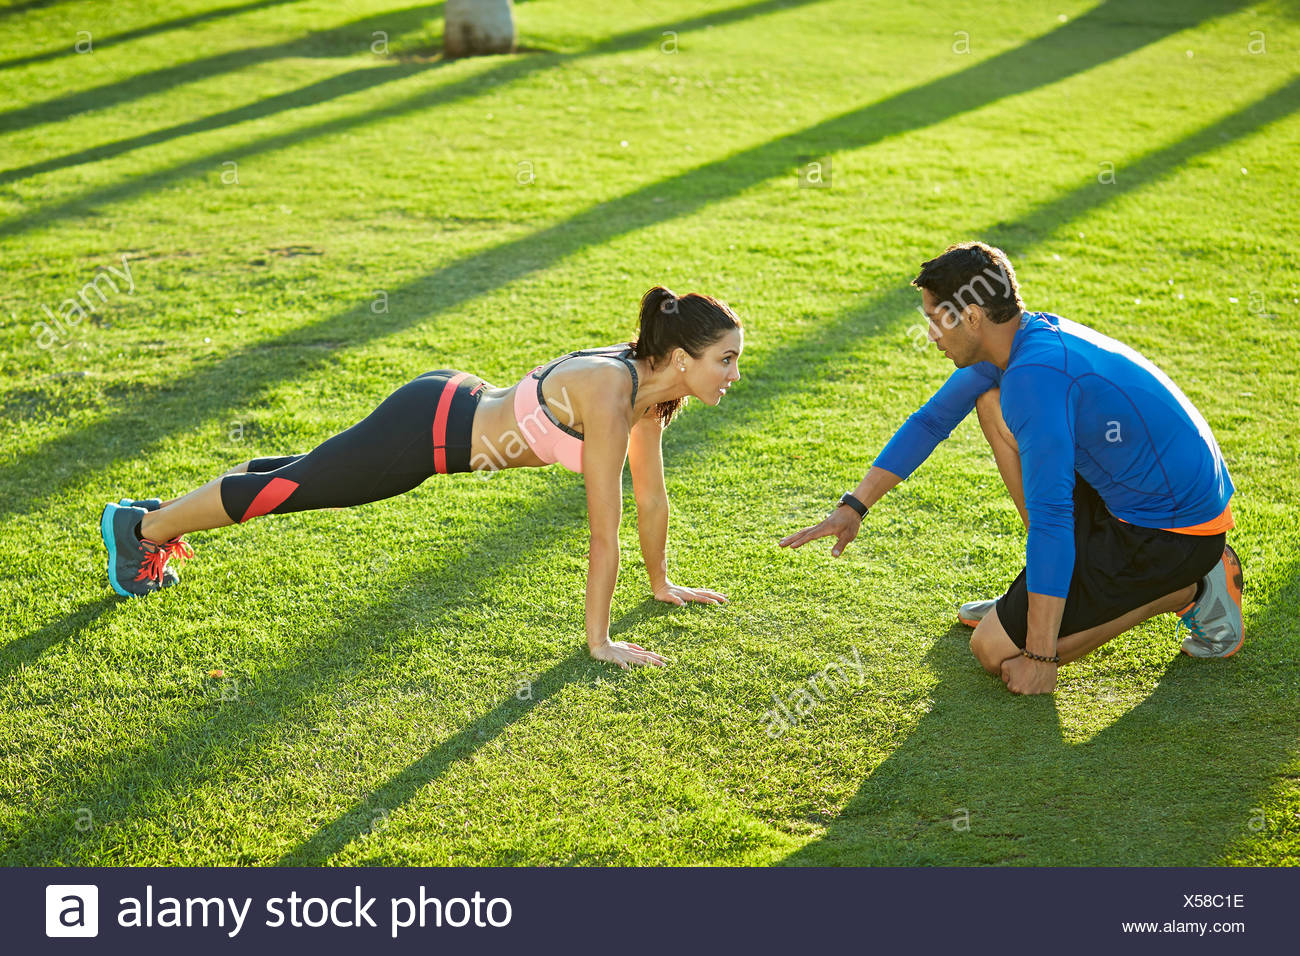 Personal trainer with woman doing plank exercise Stock Photo